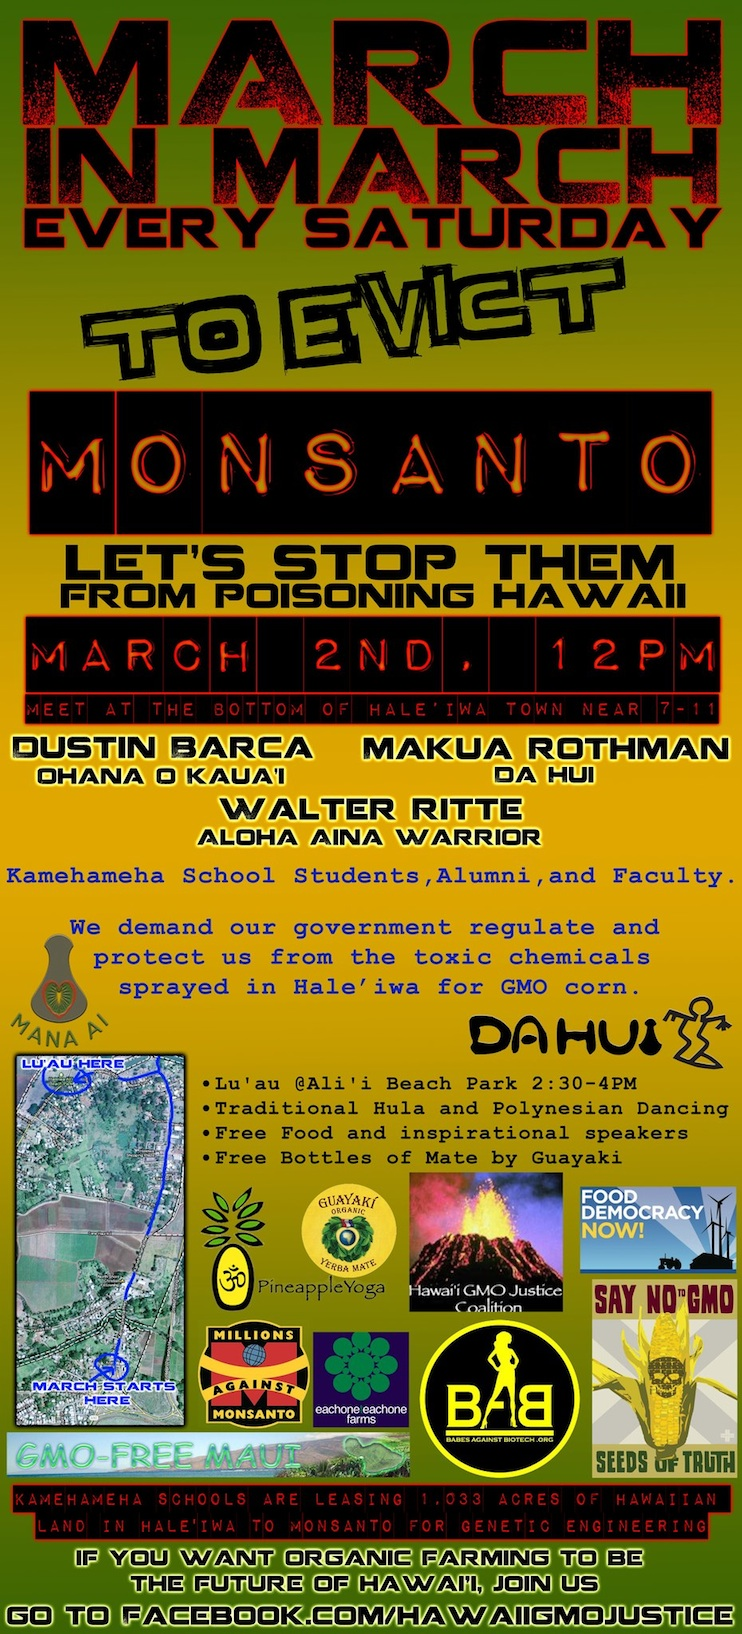 march in march to evict monsant march2 March in March to Evict Monsanto Syngenta Protest Pollution pesticides Occupy Monsanto Oahu Monsanto Molokai Maui March lease land Kauai Kamehameha Schools herbicides Hawaii GMO Justice Coalition Hawaii Haleiwa DuPont Pioneer Dupont Dow Demonstration Dee Jay Mailer Chemicals Big Island Babes Against Biotech